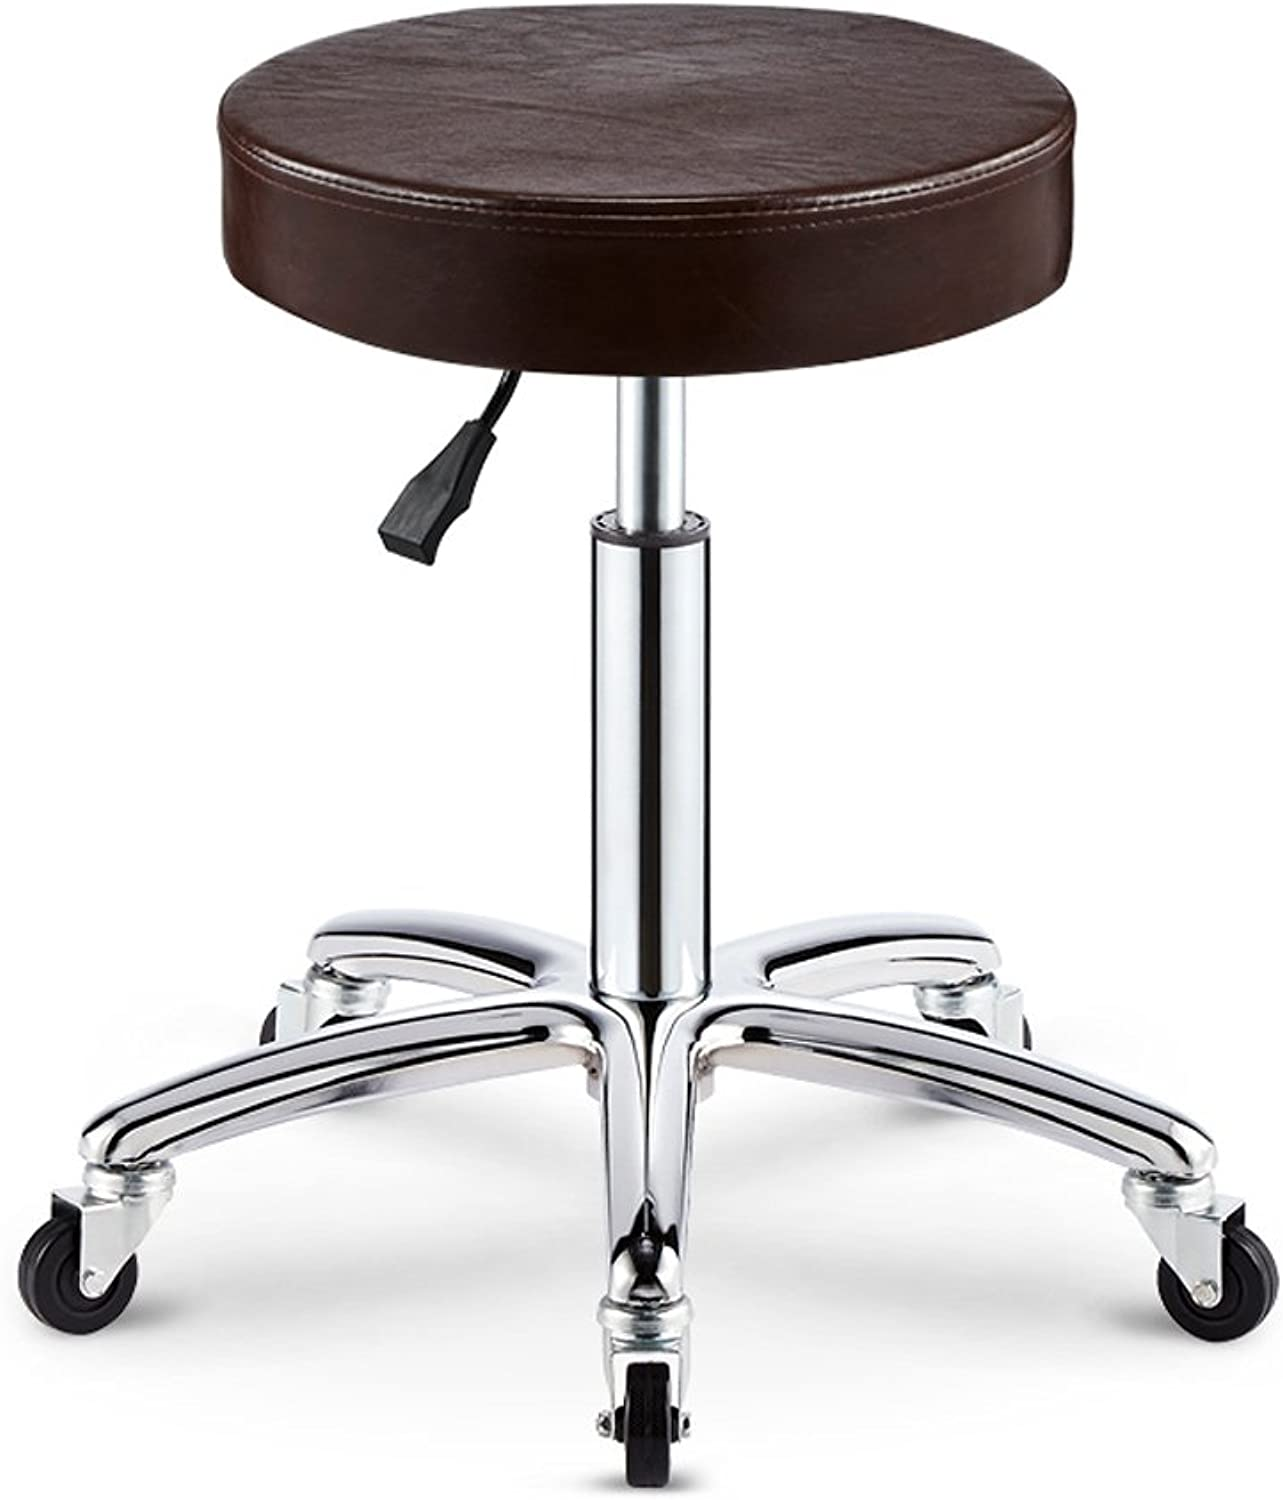 Adjustable Rolling Pneumatic Stool for Massage Tables, Examination Tables, and Physician's Office (Black) (color   5)